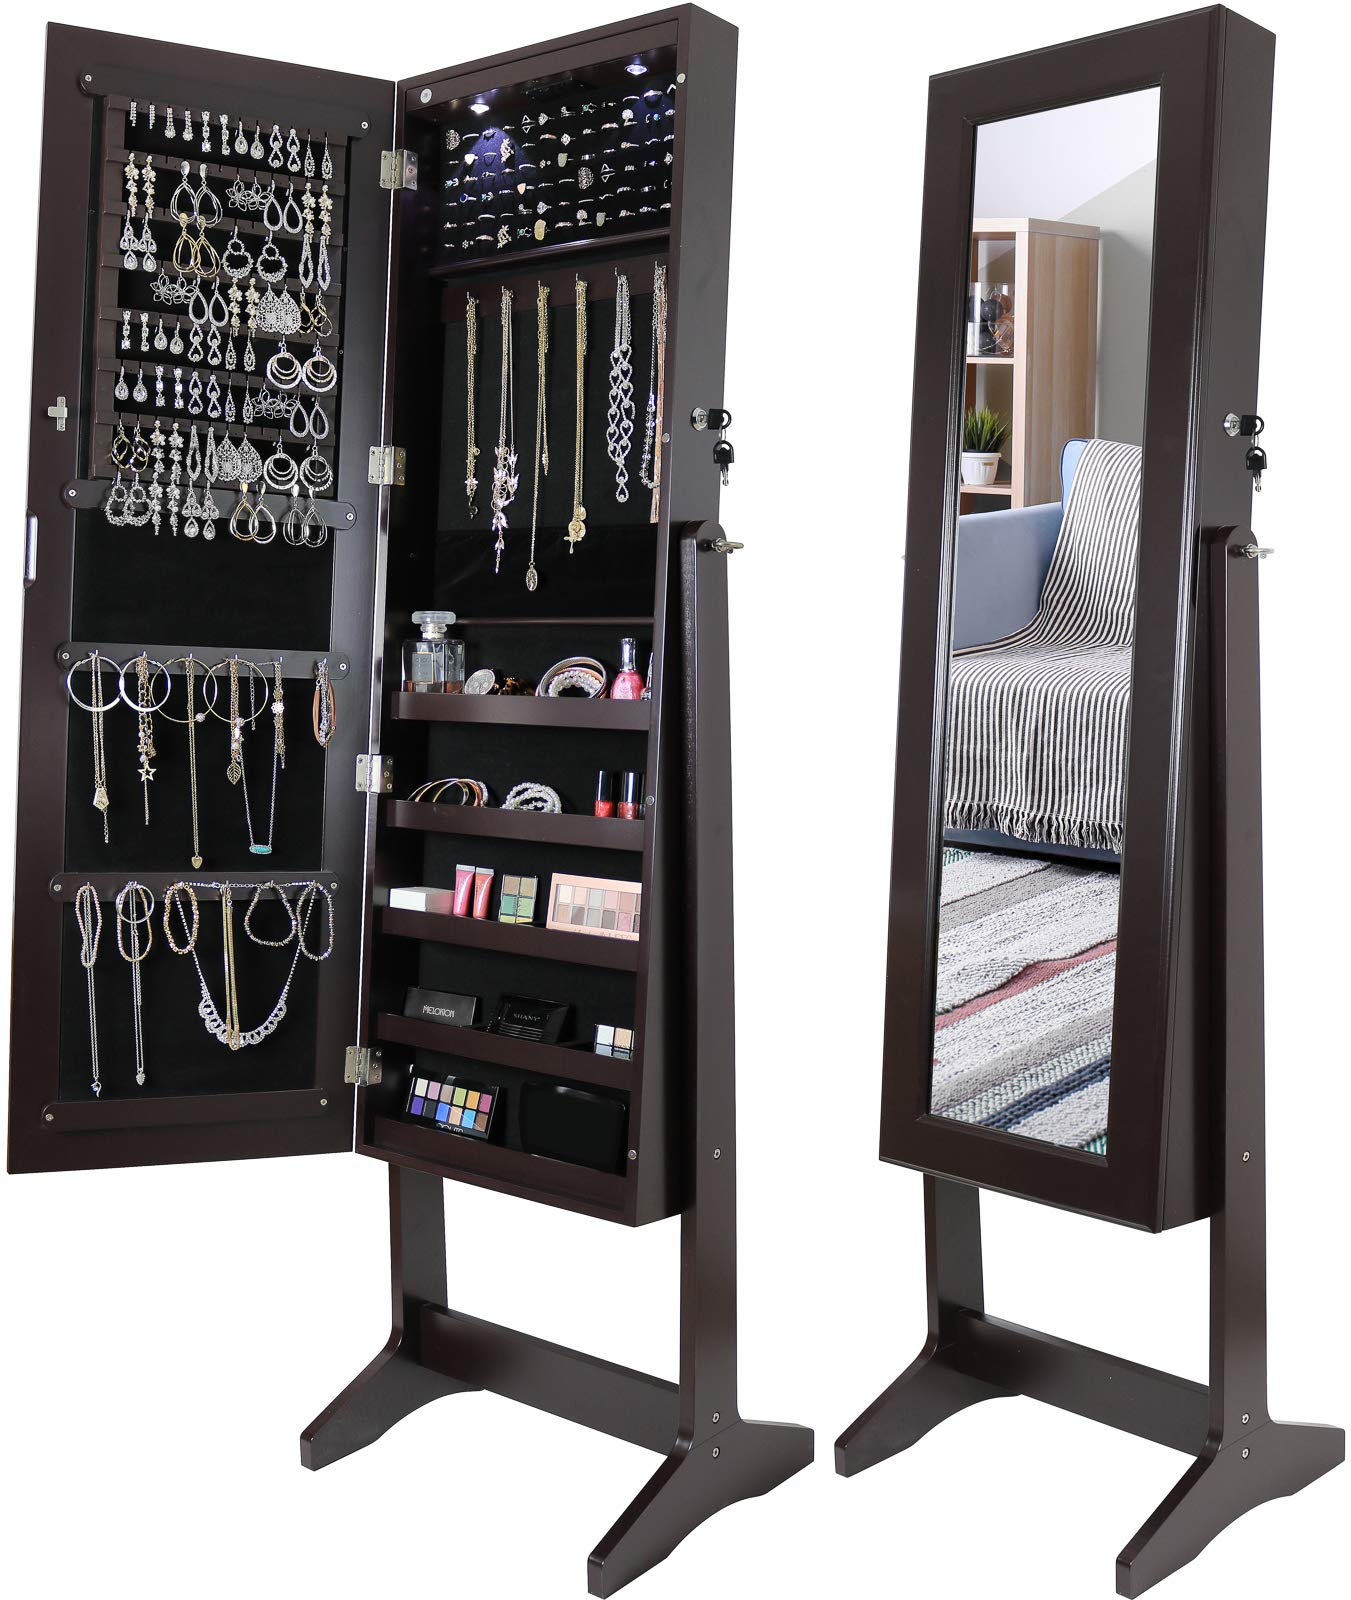 Greenco Free Standing Jewelry Organizer Armoire with Large Mirror and Led Lights, Lockable Espresso